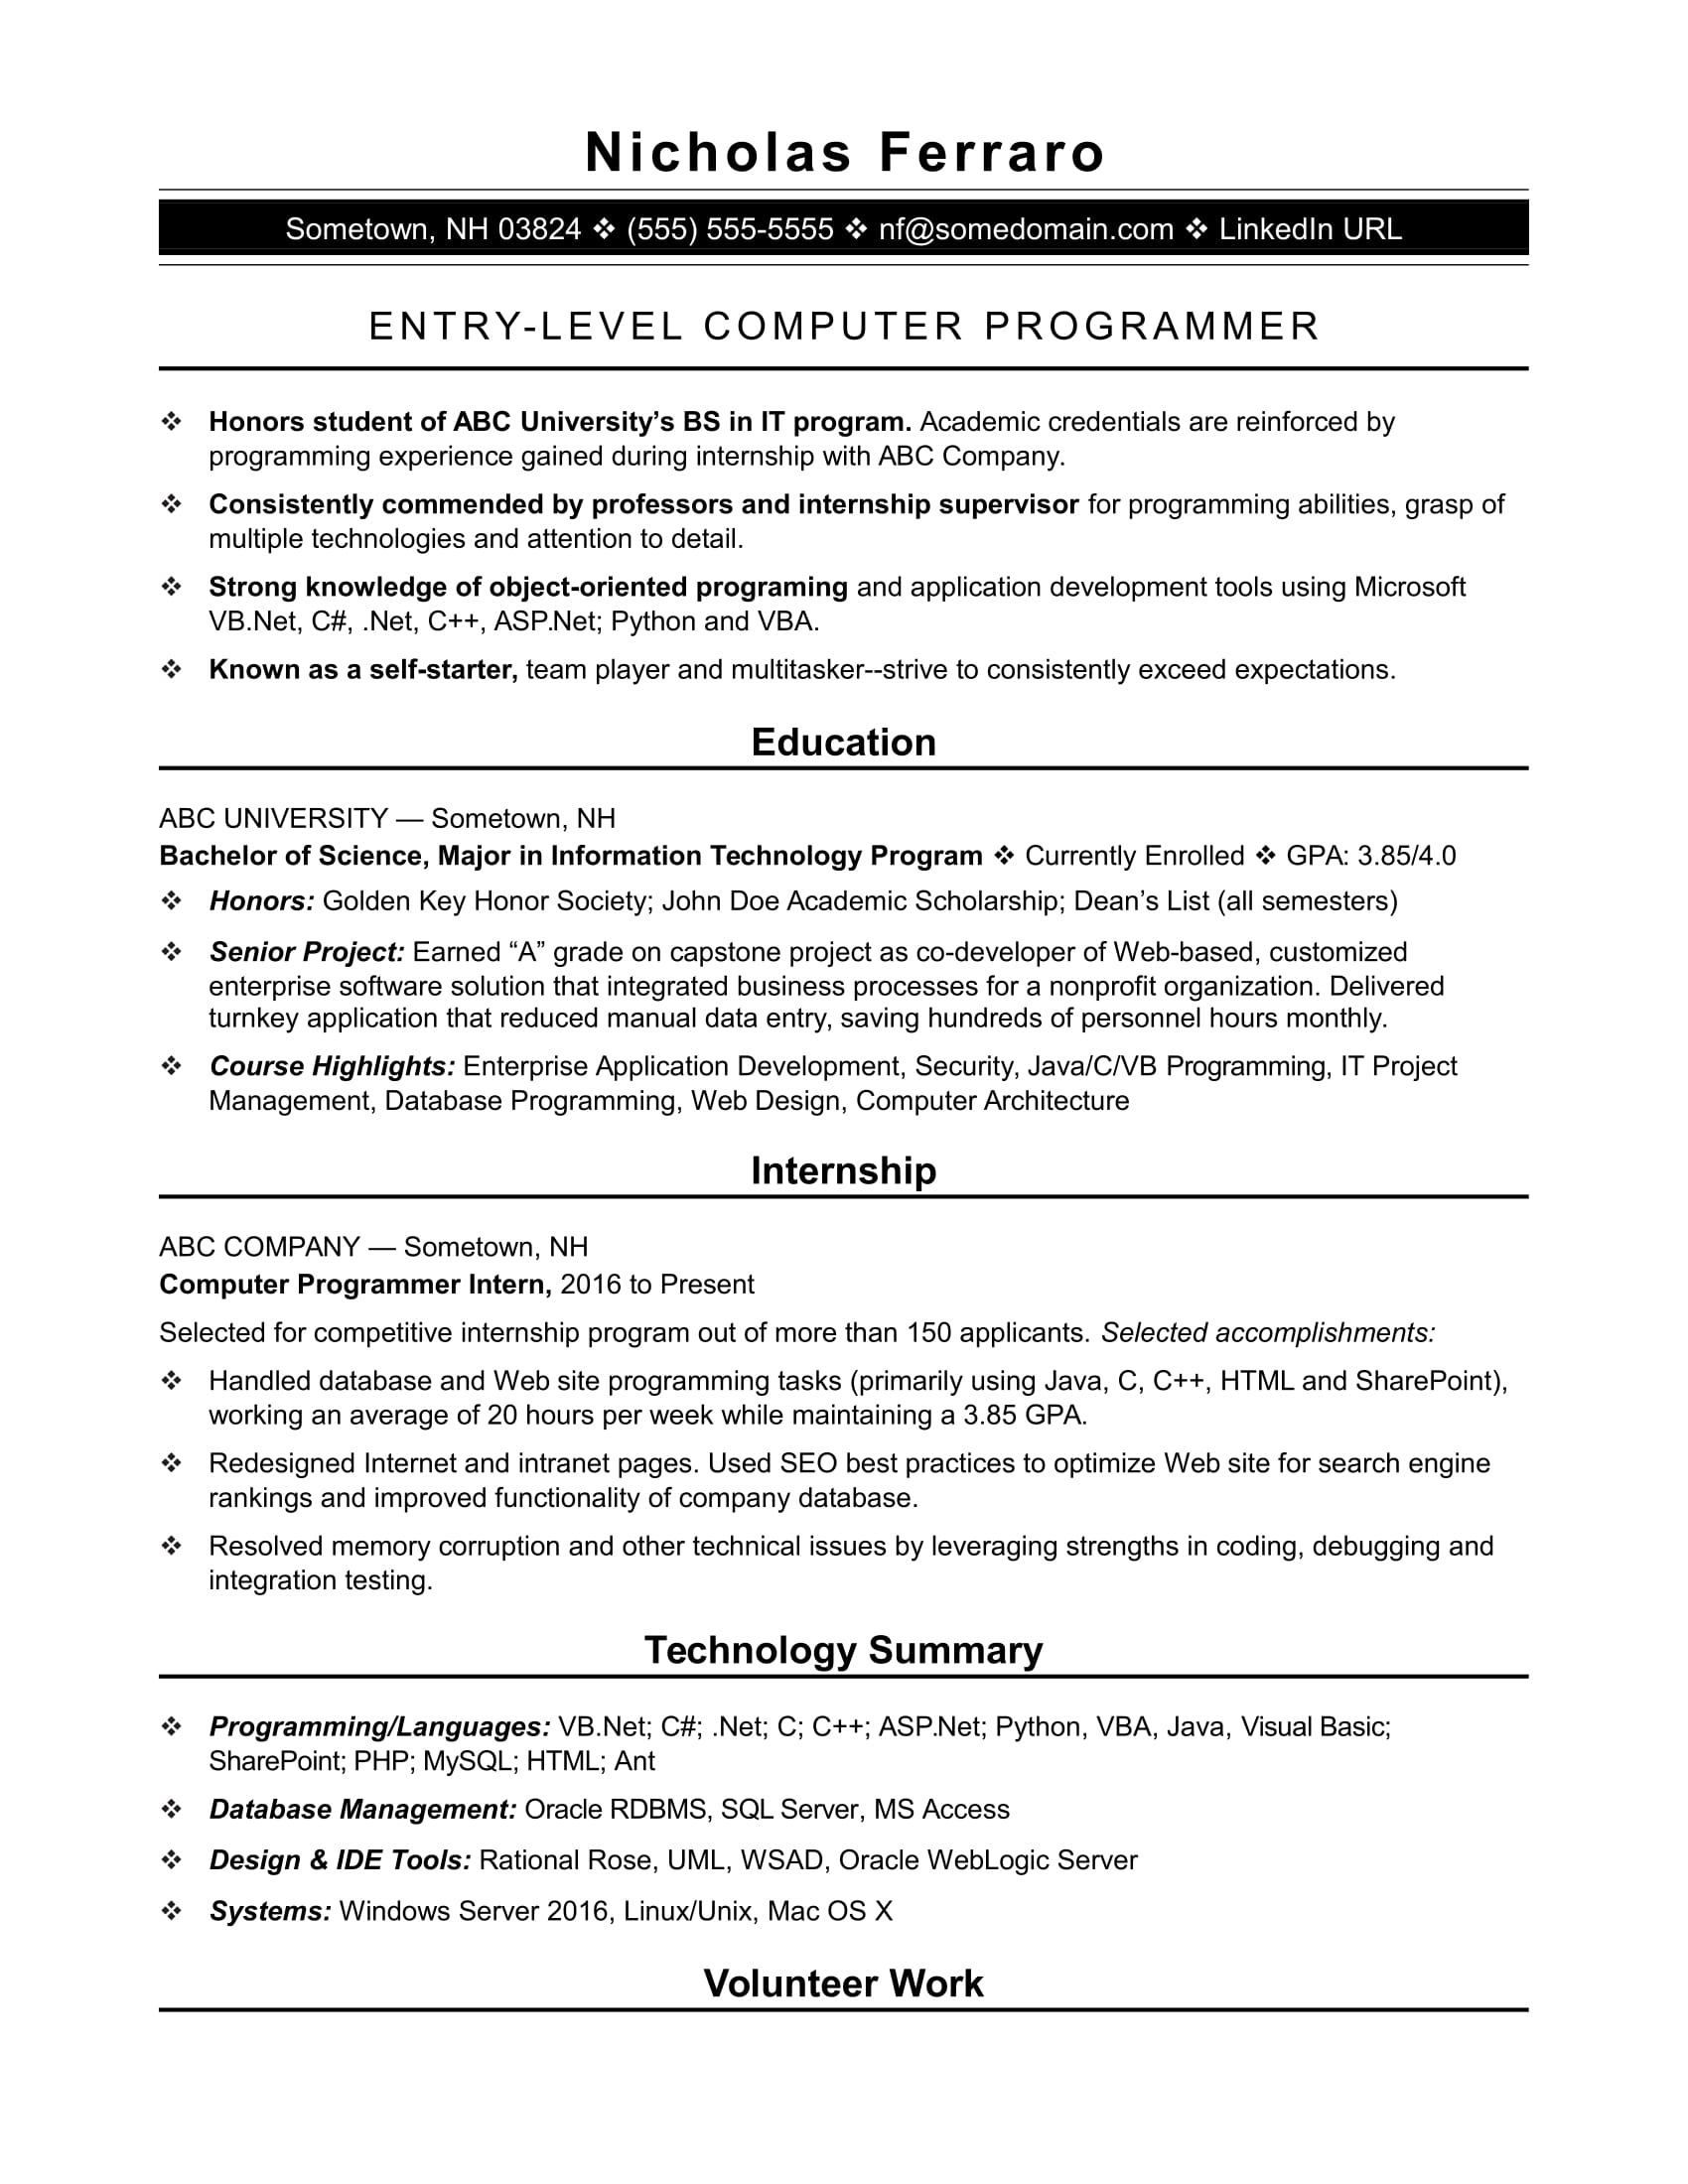 Sample resume for an entry-level computer programmer